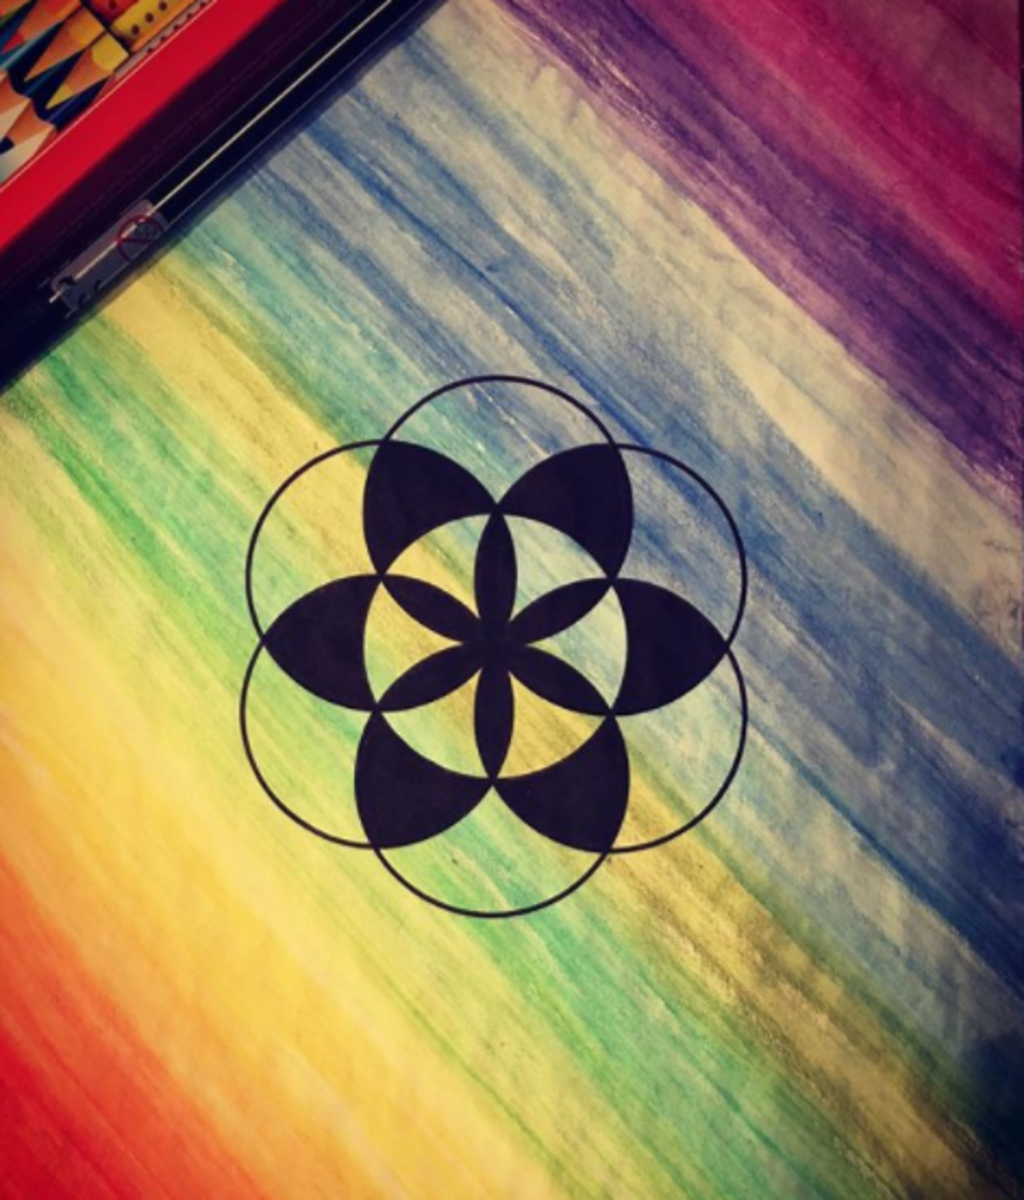 The seed of life on a watercolored rainbow background